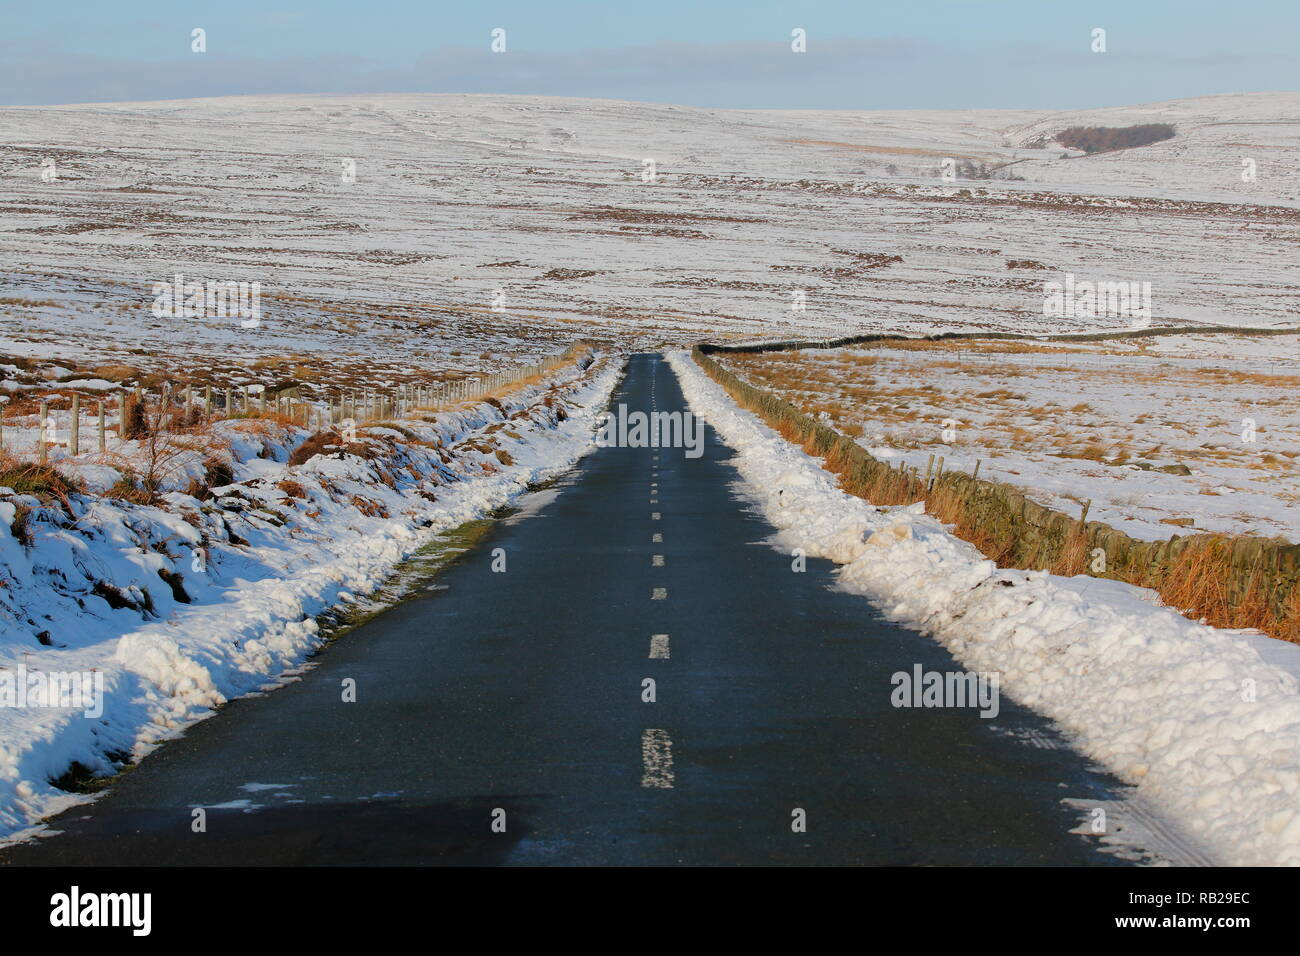 A country road in the Peak District National Park that has been cleared of snow to allow motorists to pass through safely. - Stock Image